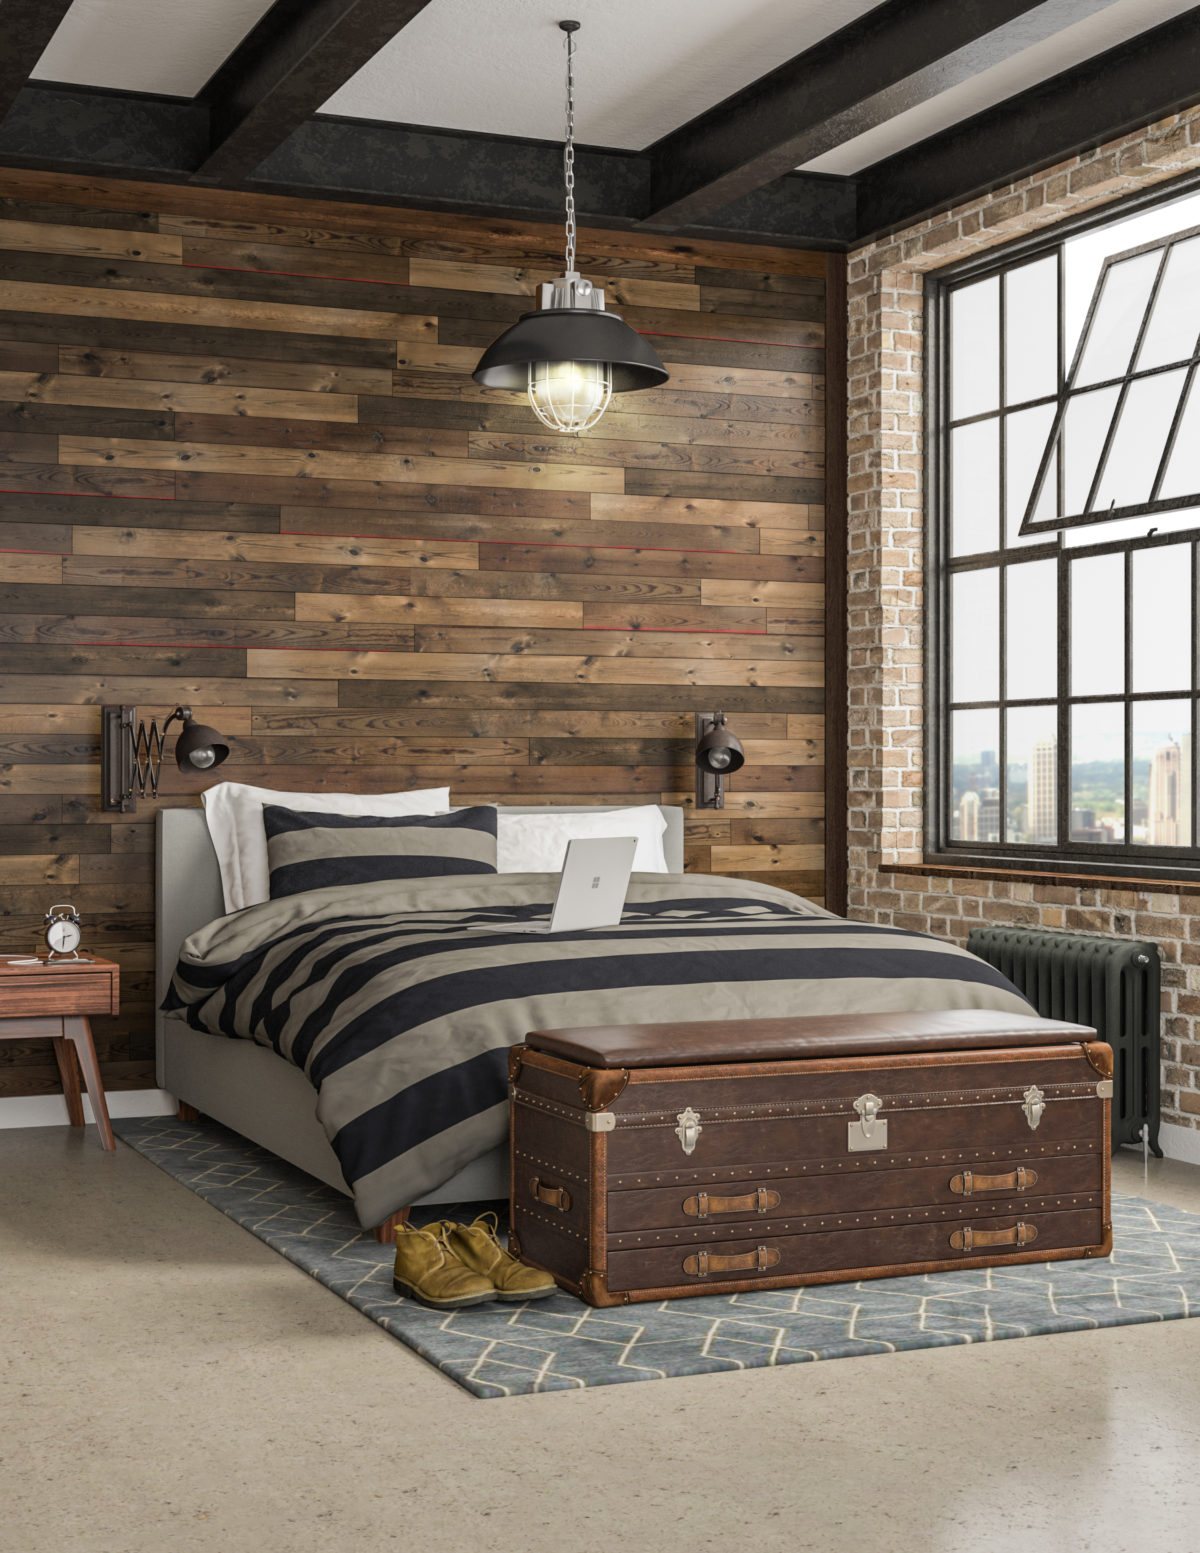 Modern bedroom with rustic wood accent wall [Easy Barnwood Collection from Great American Spaces]